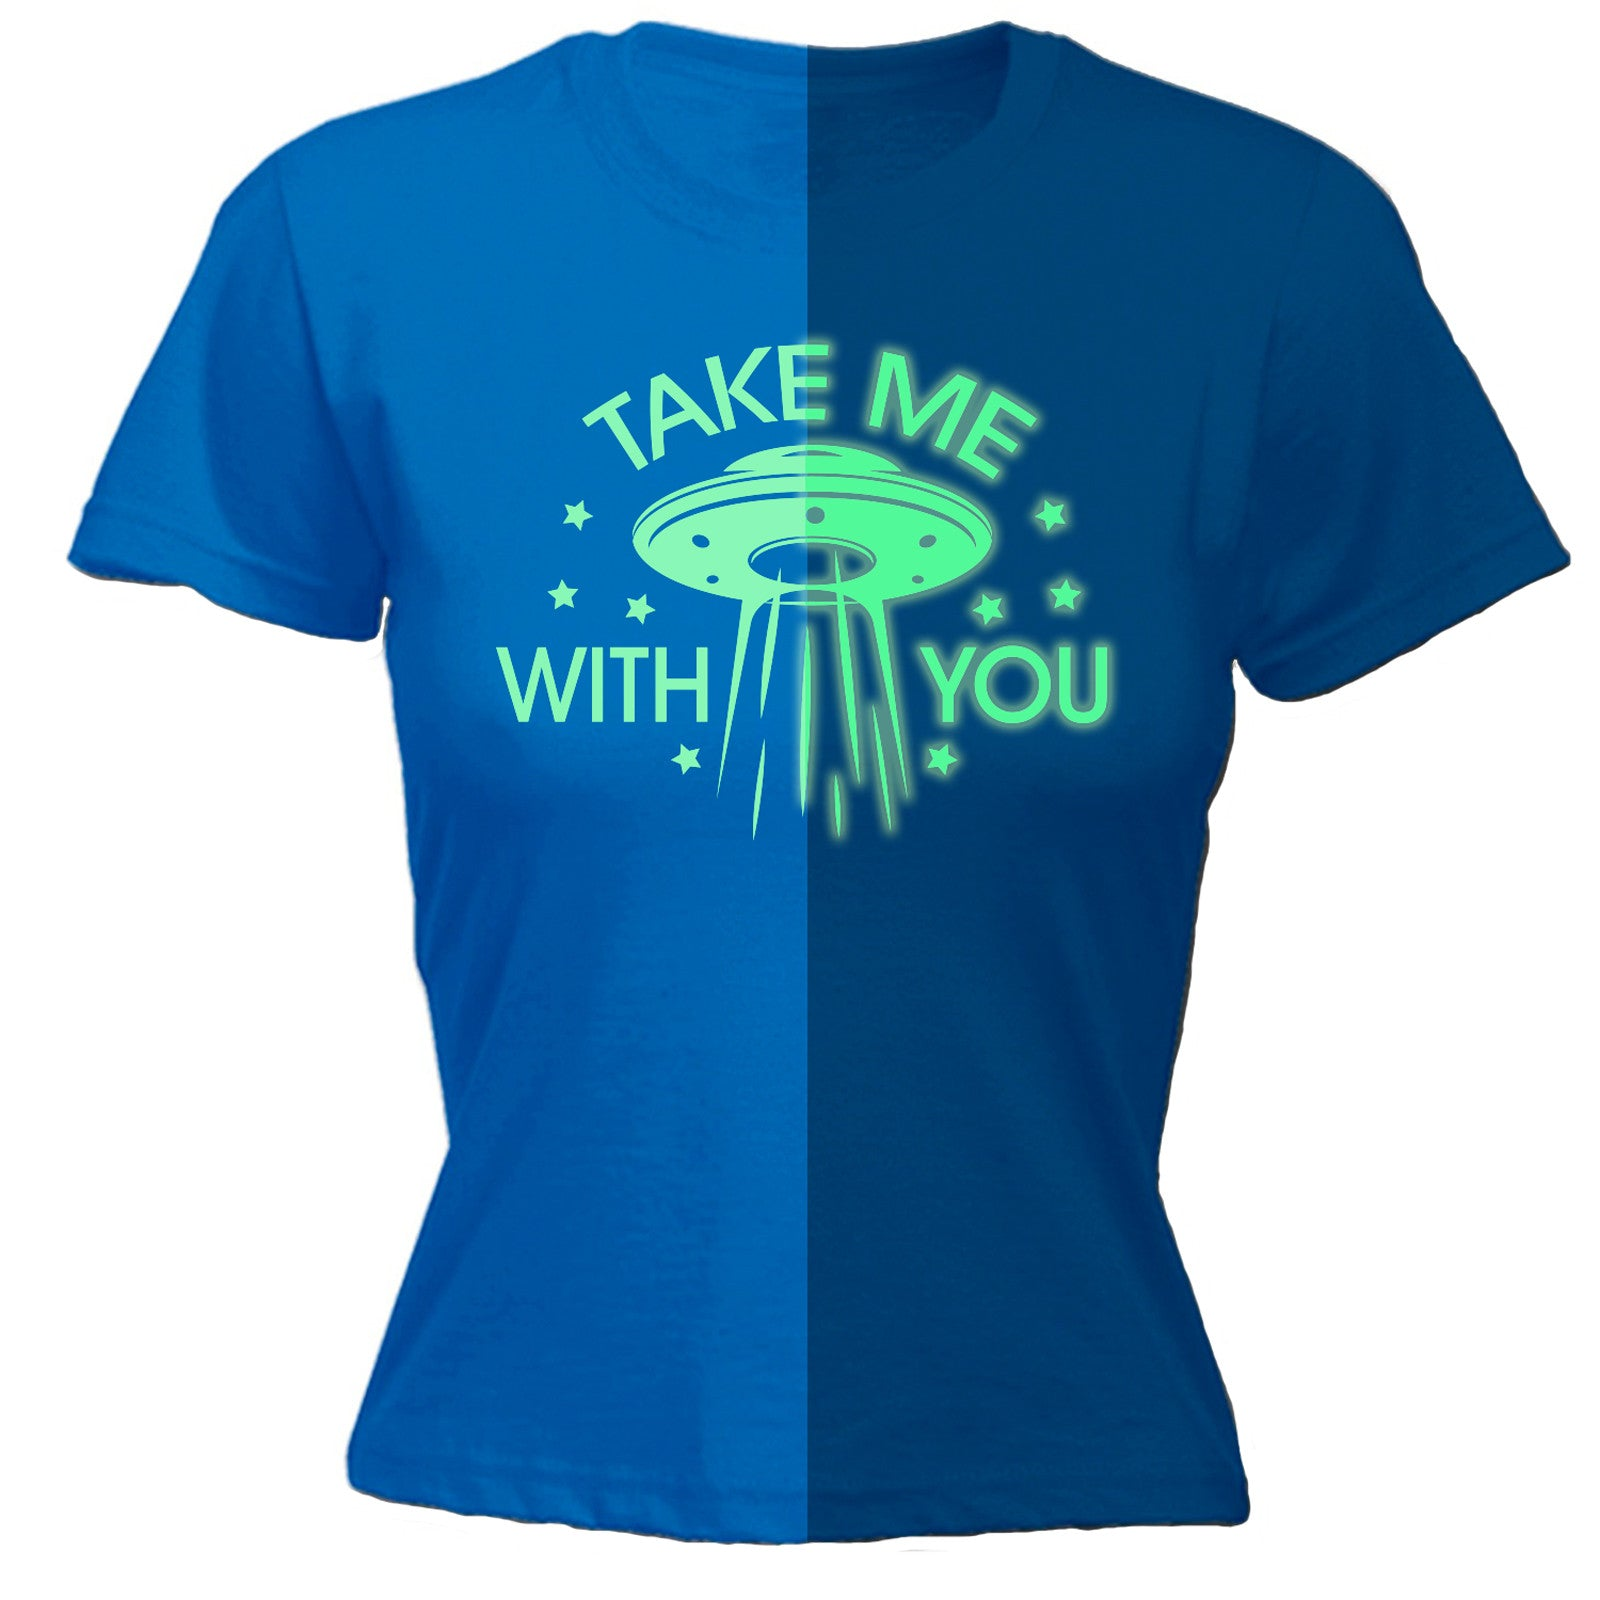 d83f907d230 Buy 123t Women s Take Me With You GID UFO - FITTED T-SHIRT at ...